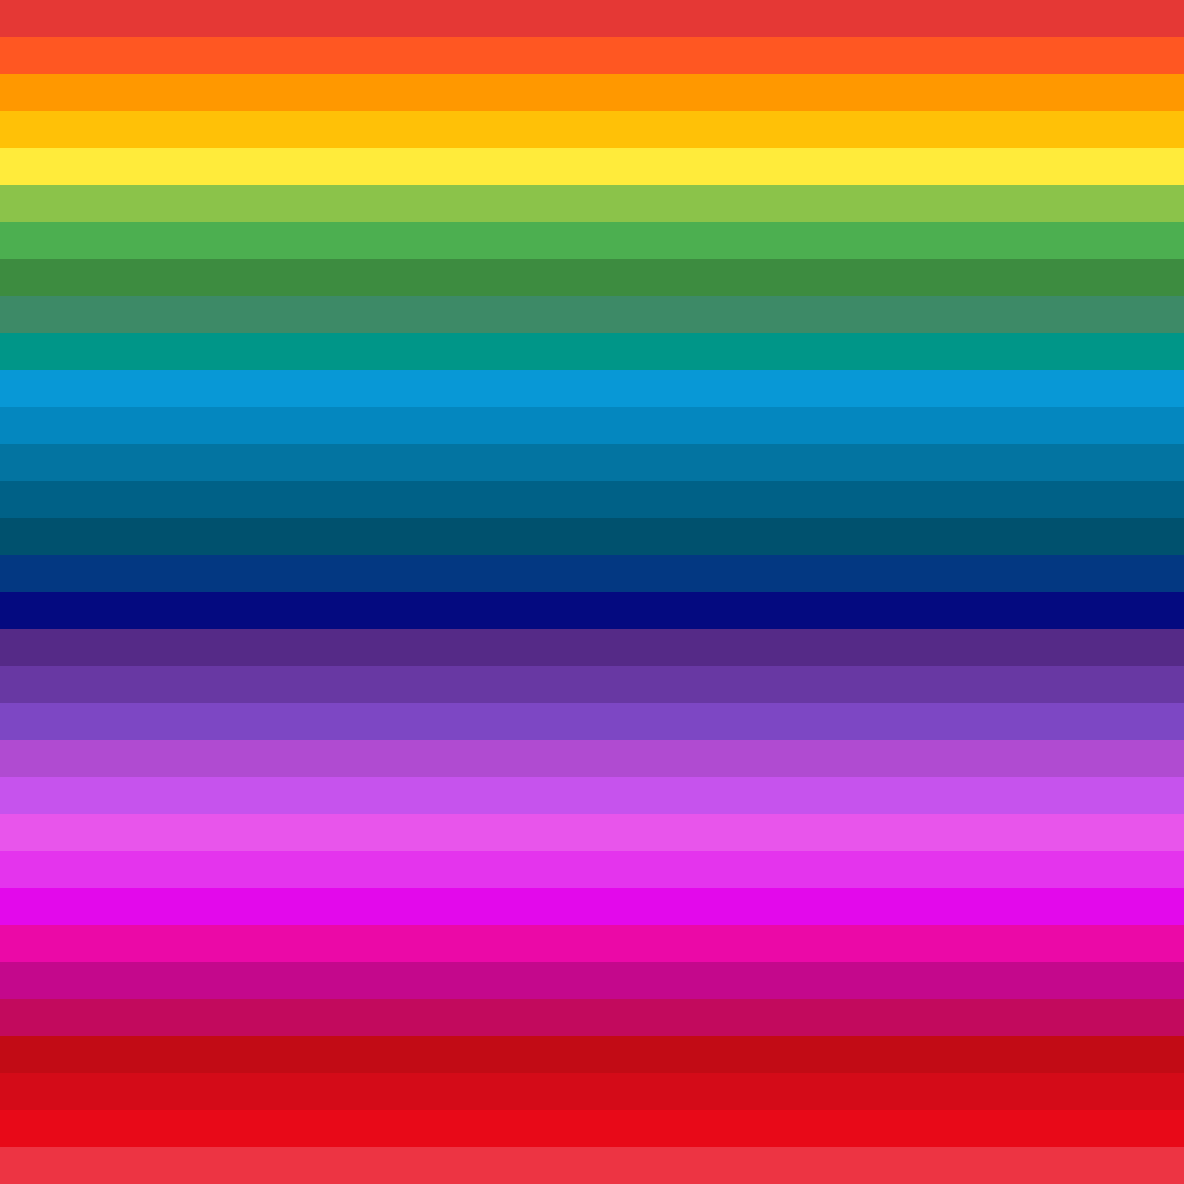 Gradient  by Pixel-Lord-12